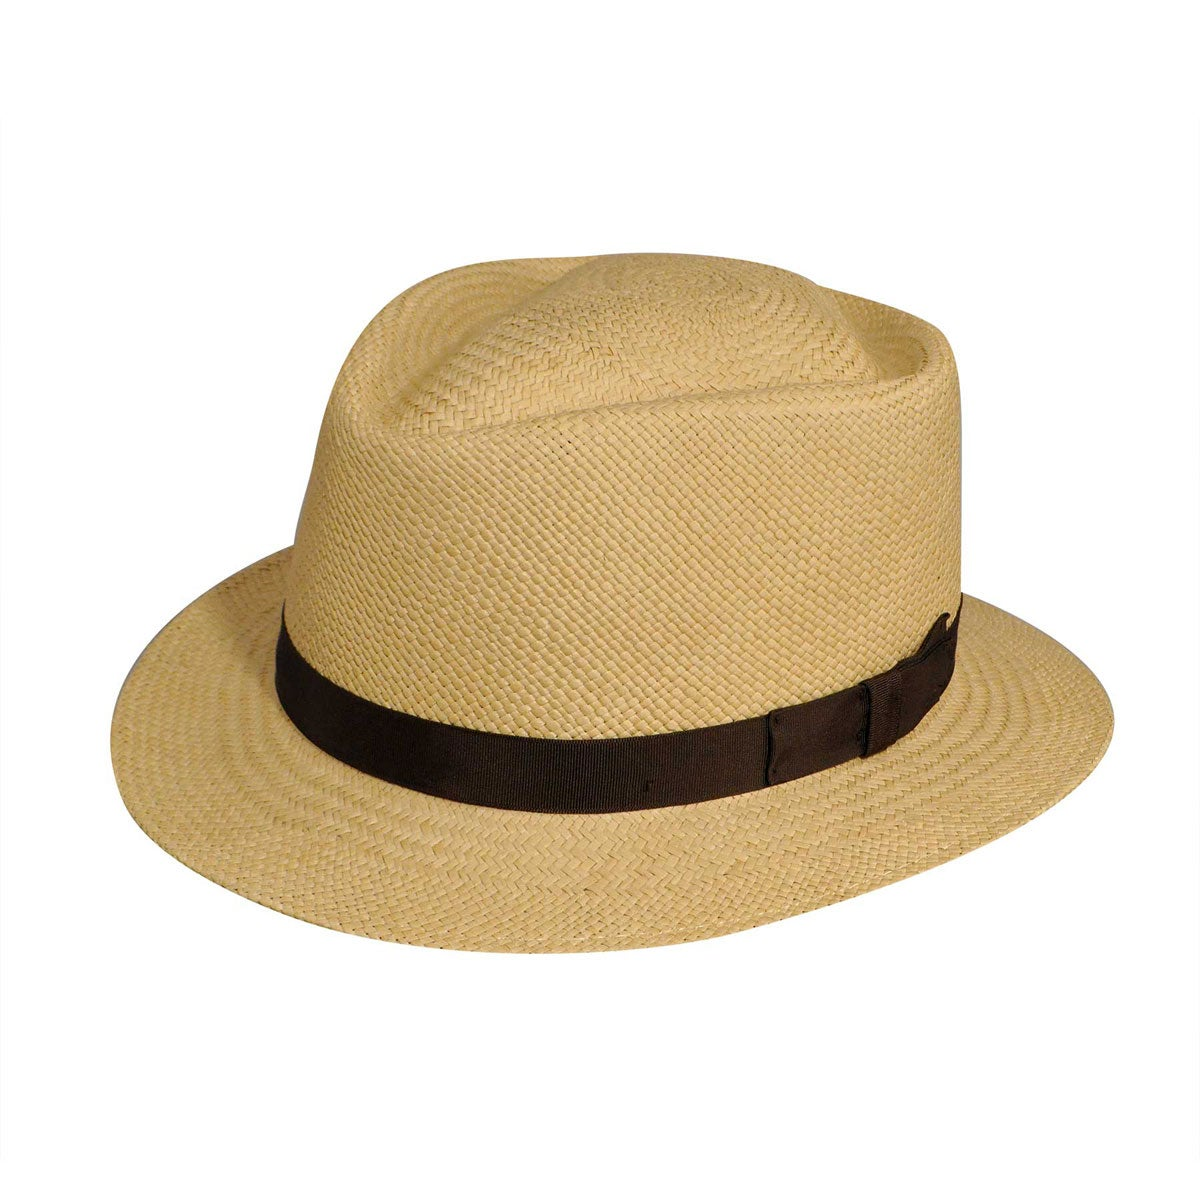 1950s Style Mens Clothing Rincon Stingy Brim Panama Fedora $95.00 AT vintagedancer.com